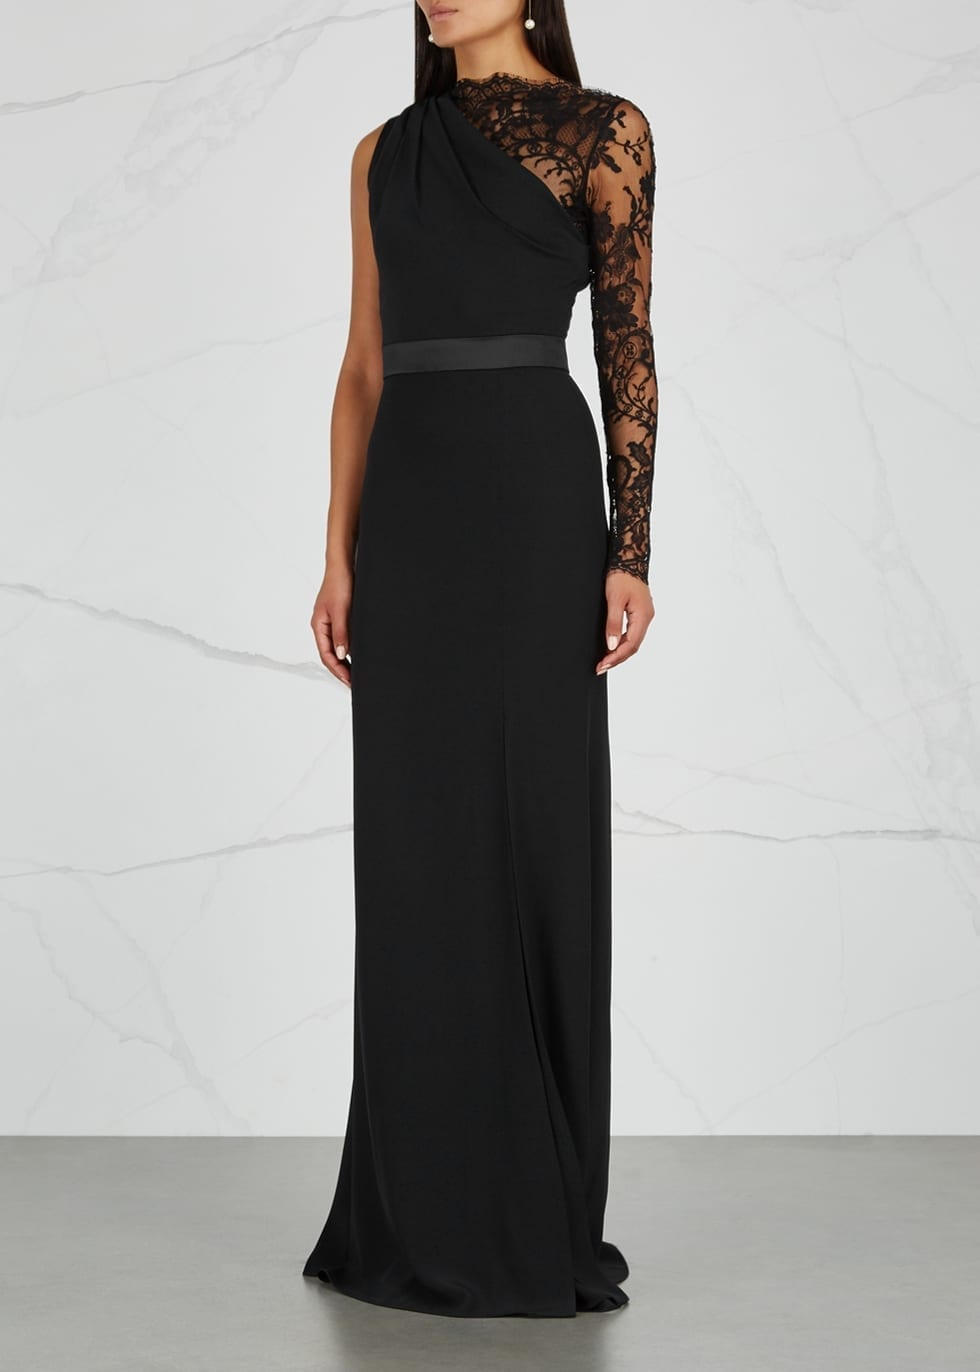 ALEXANDER MCQUEEN Lace And Satin Trimmed Black Gown